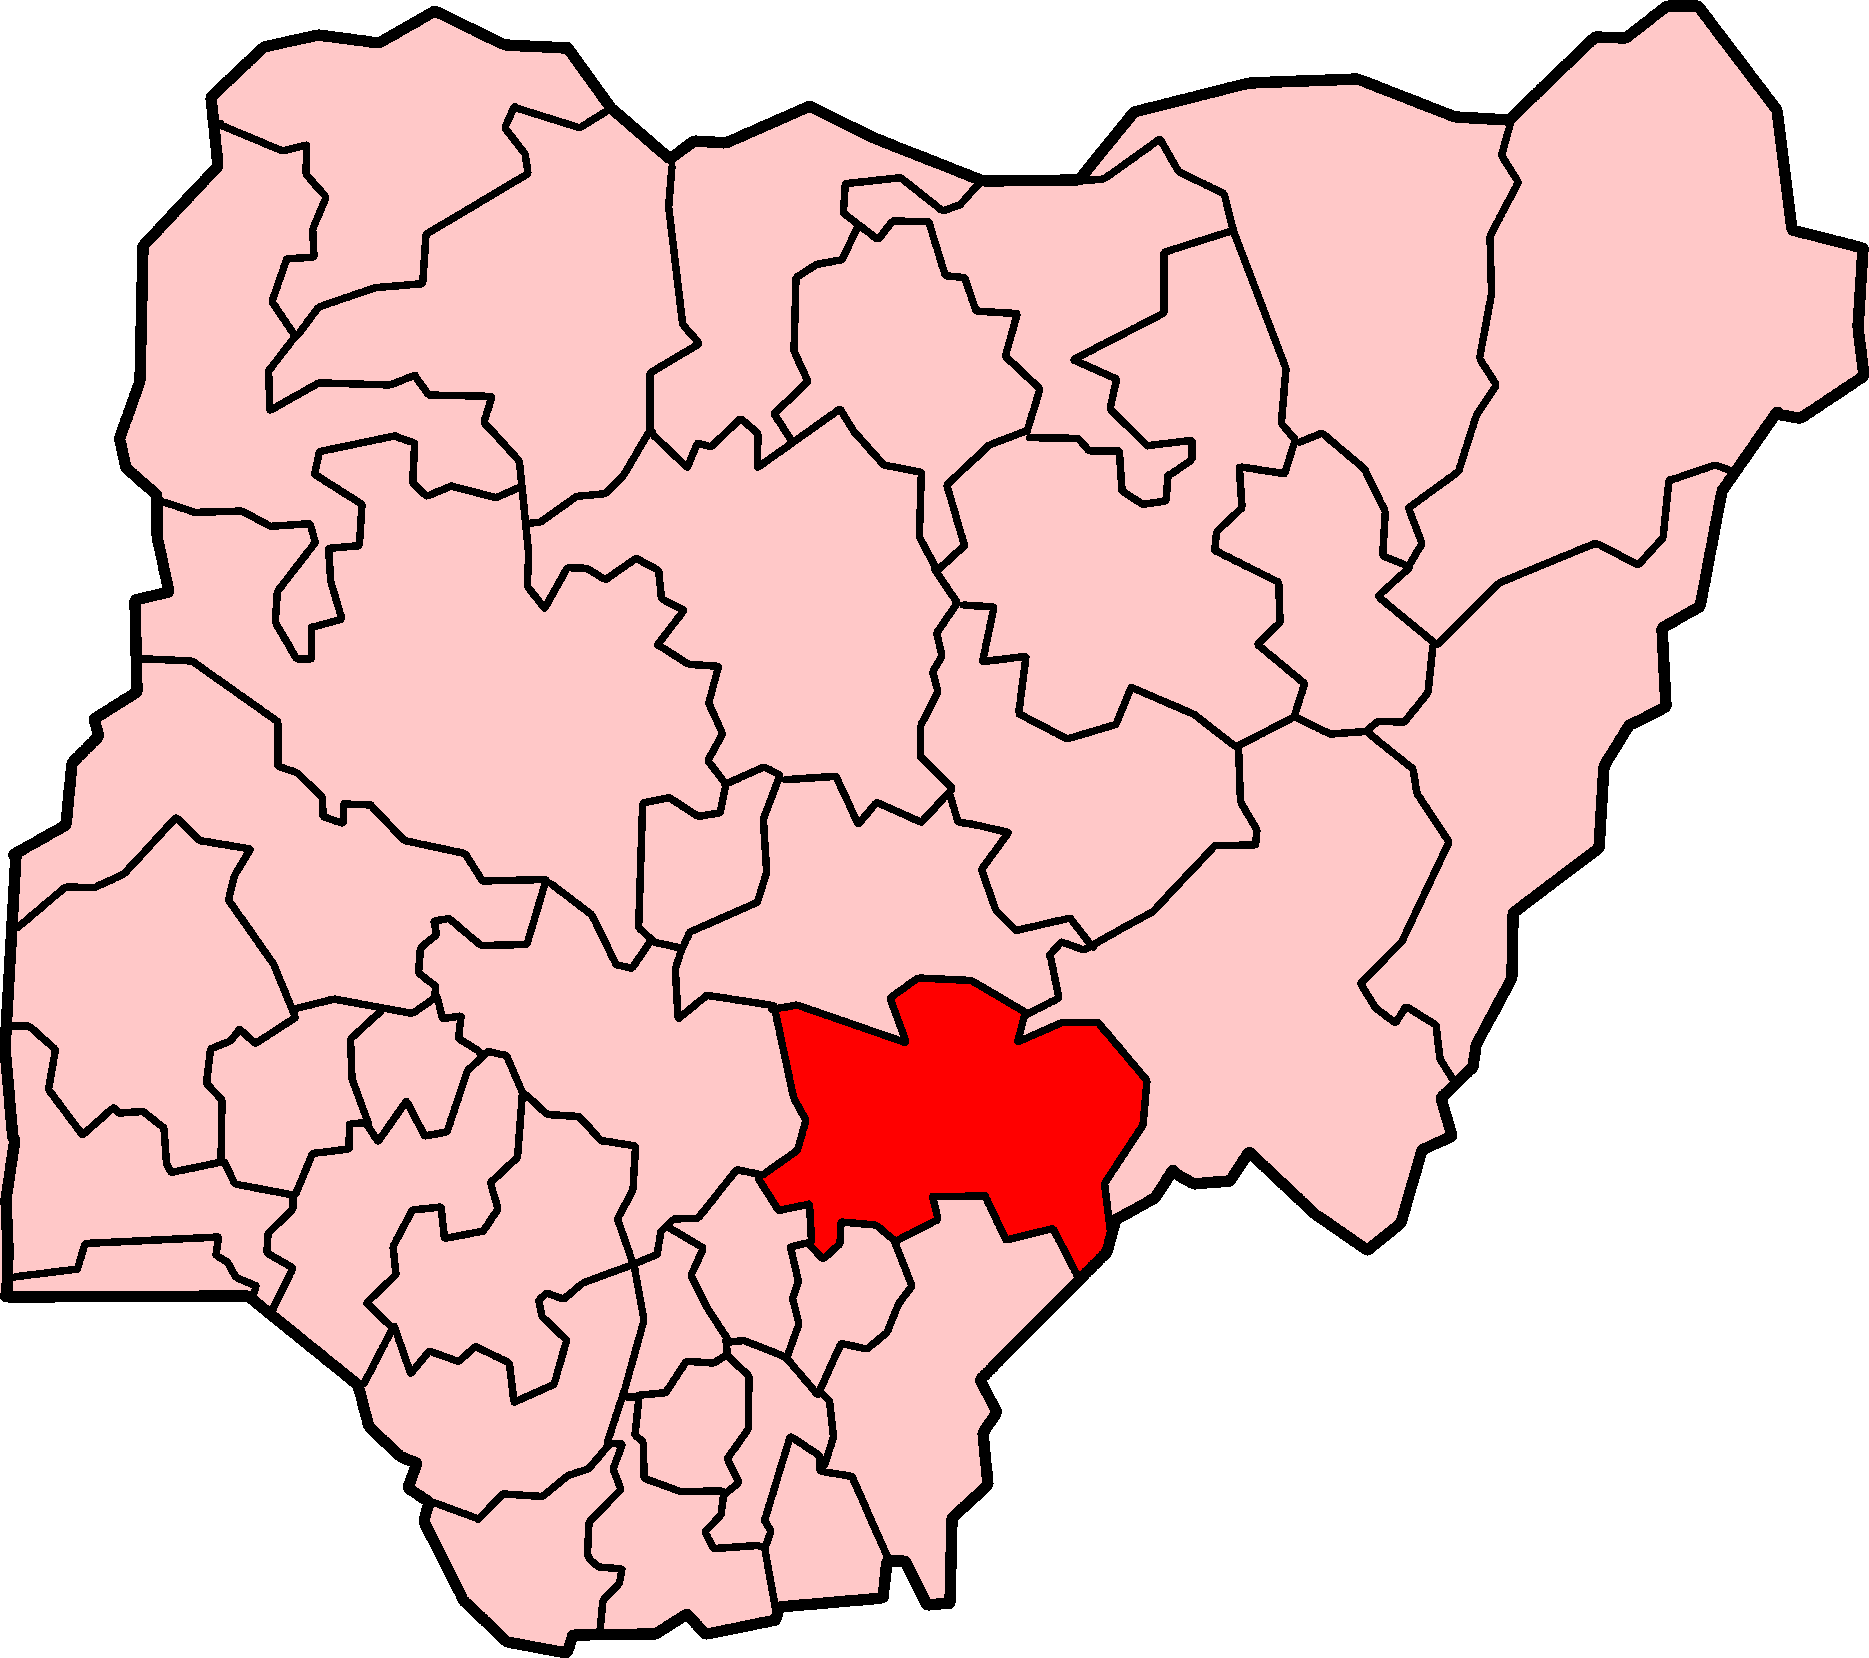 File:NigeriaBenue.png - Wikimedia Commons on map of borno state, map of abia state, map of bay state, map of nasarawa state, map of adamawa state, map of bayelsa state, map of colima state, map of kaduna state, map of rivers state, map of osun state, map of bihar state, map of zamfara state, map of rio de janeiro state, map of anambra state, map of kogi state, map of ekiti state, map of enugu state, map of plateau state, map of gombe state, map of ogun state,